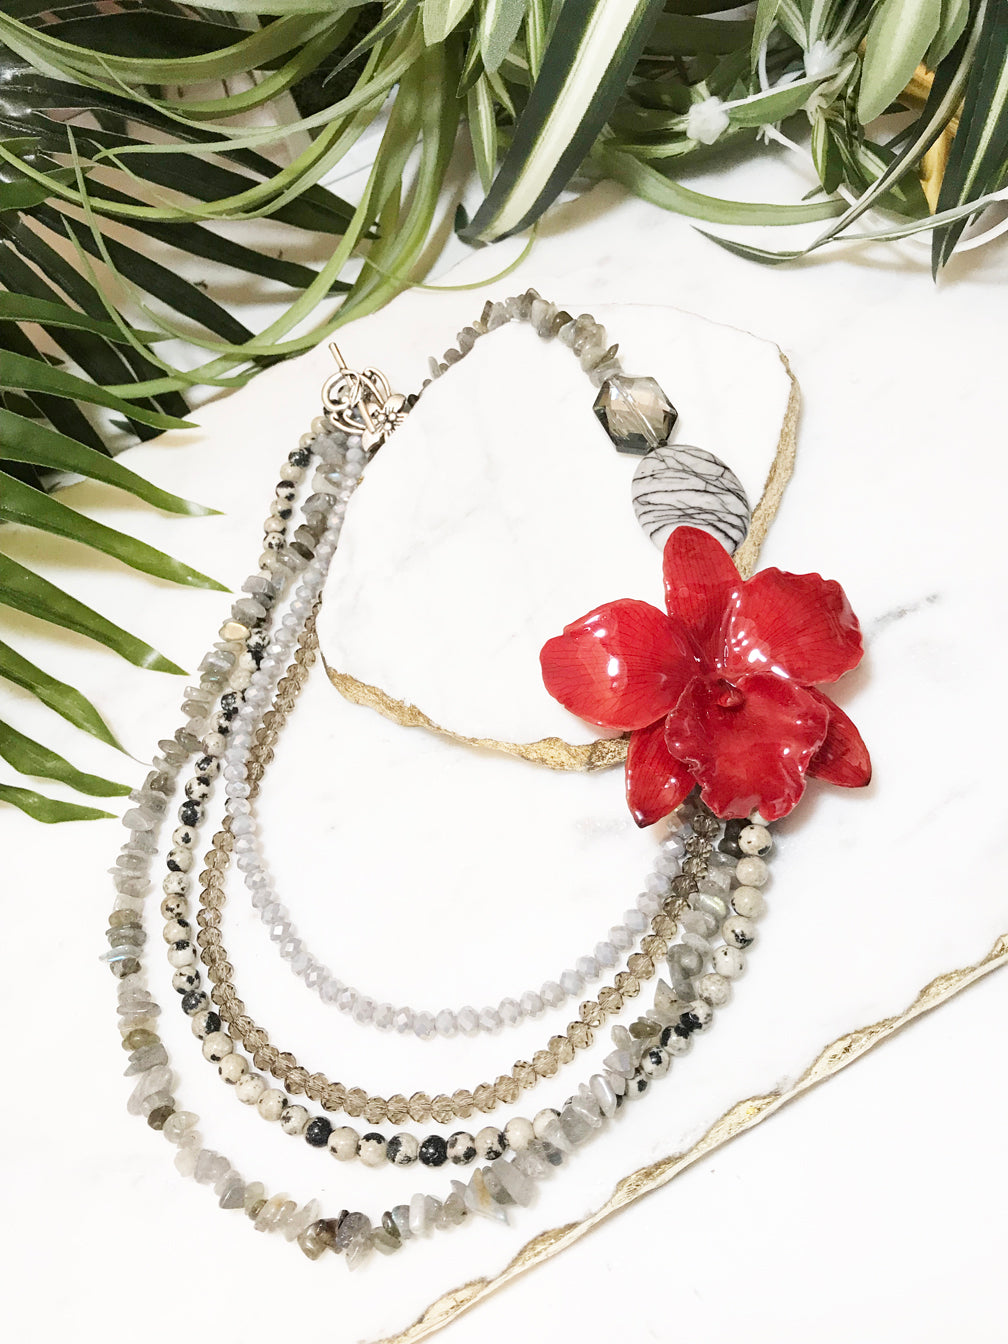 bloom tiered necklace - BL-T-002-NL